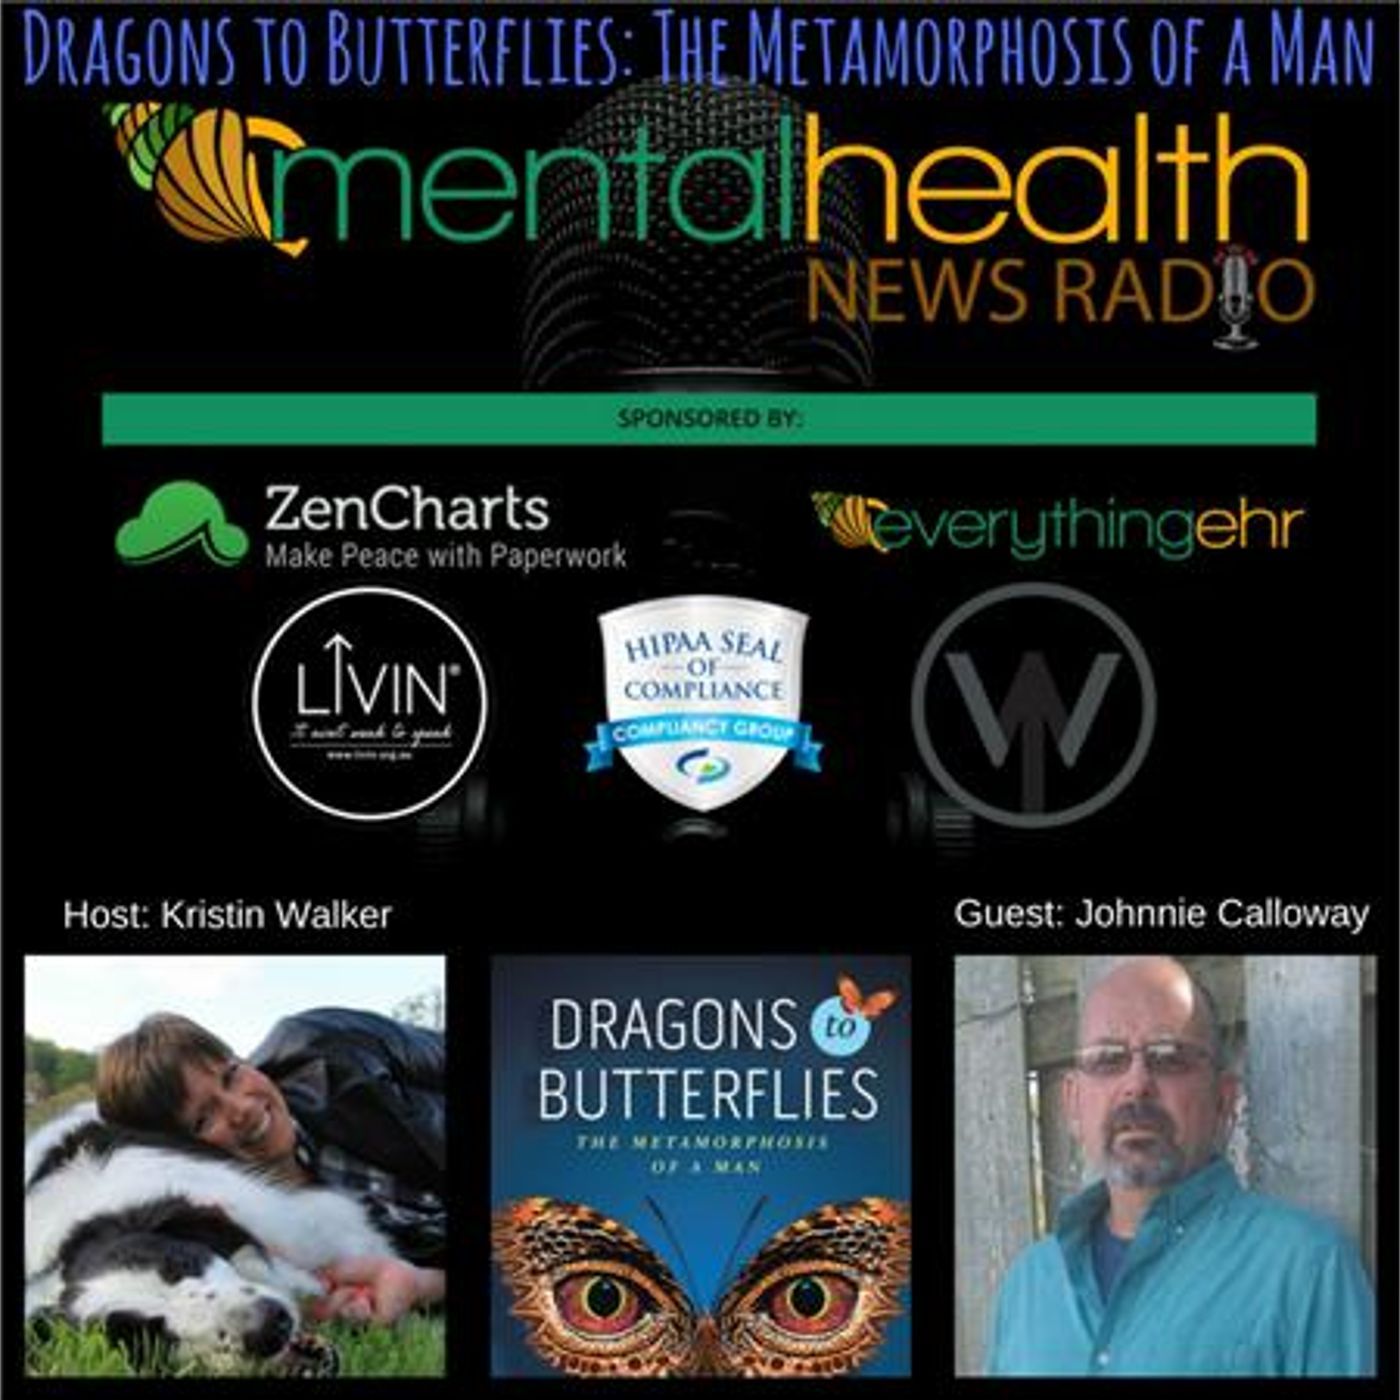 Mental Health News Radio - Dragons to Butterflies: The Metamorphosis of a Man with Johnnie Calloway